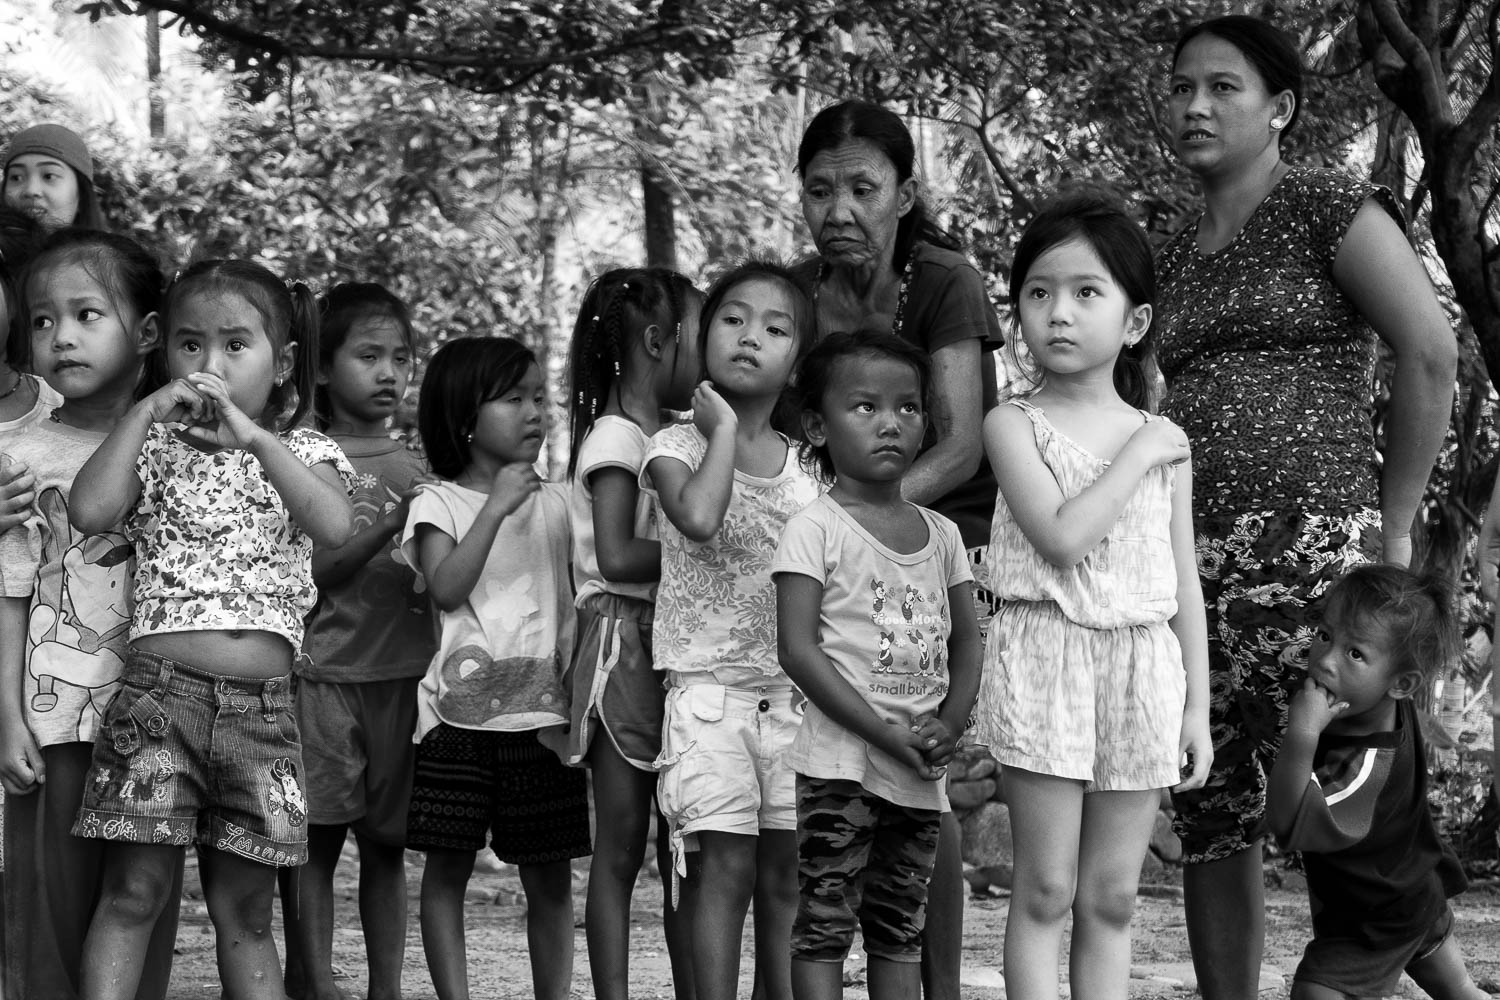 Even if Erin is not quite fluent in Filipino, she still wanted to join the games with the kids from the local community.